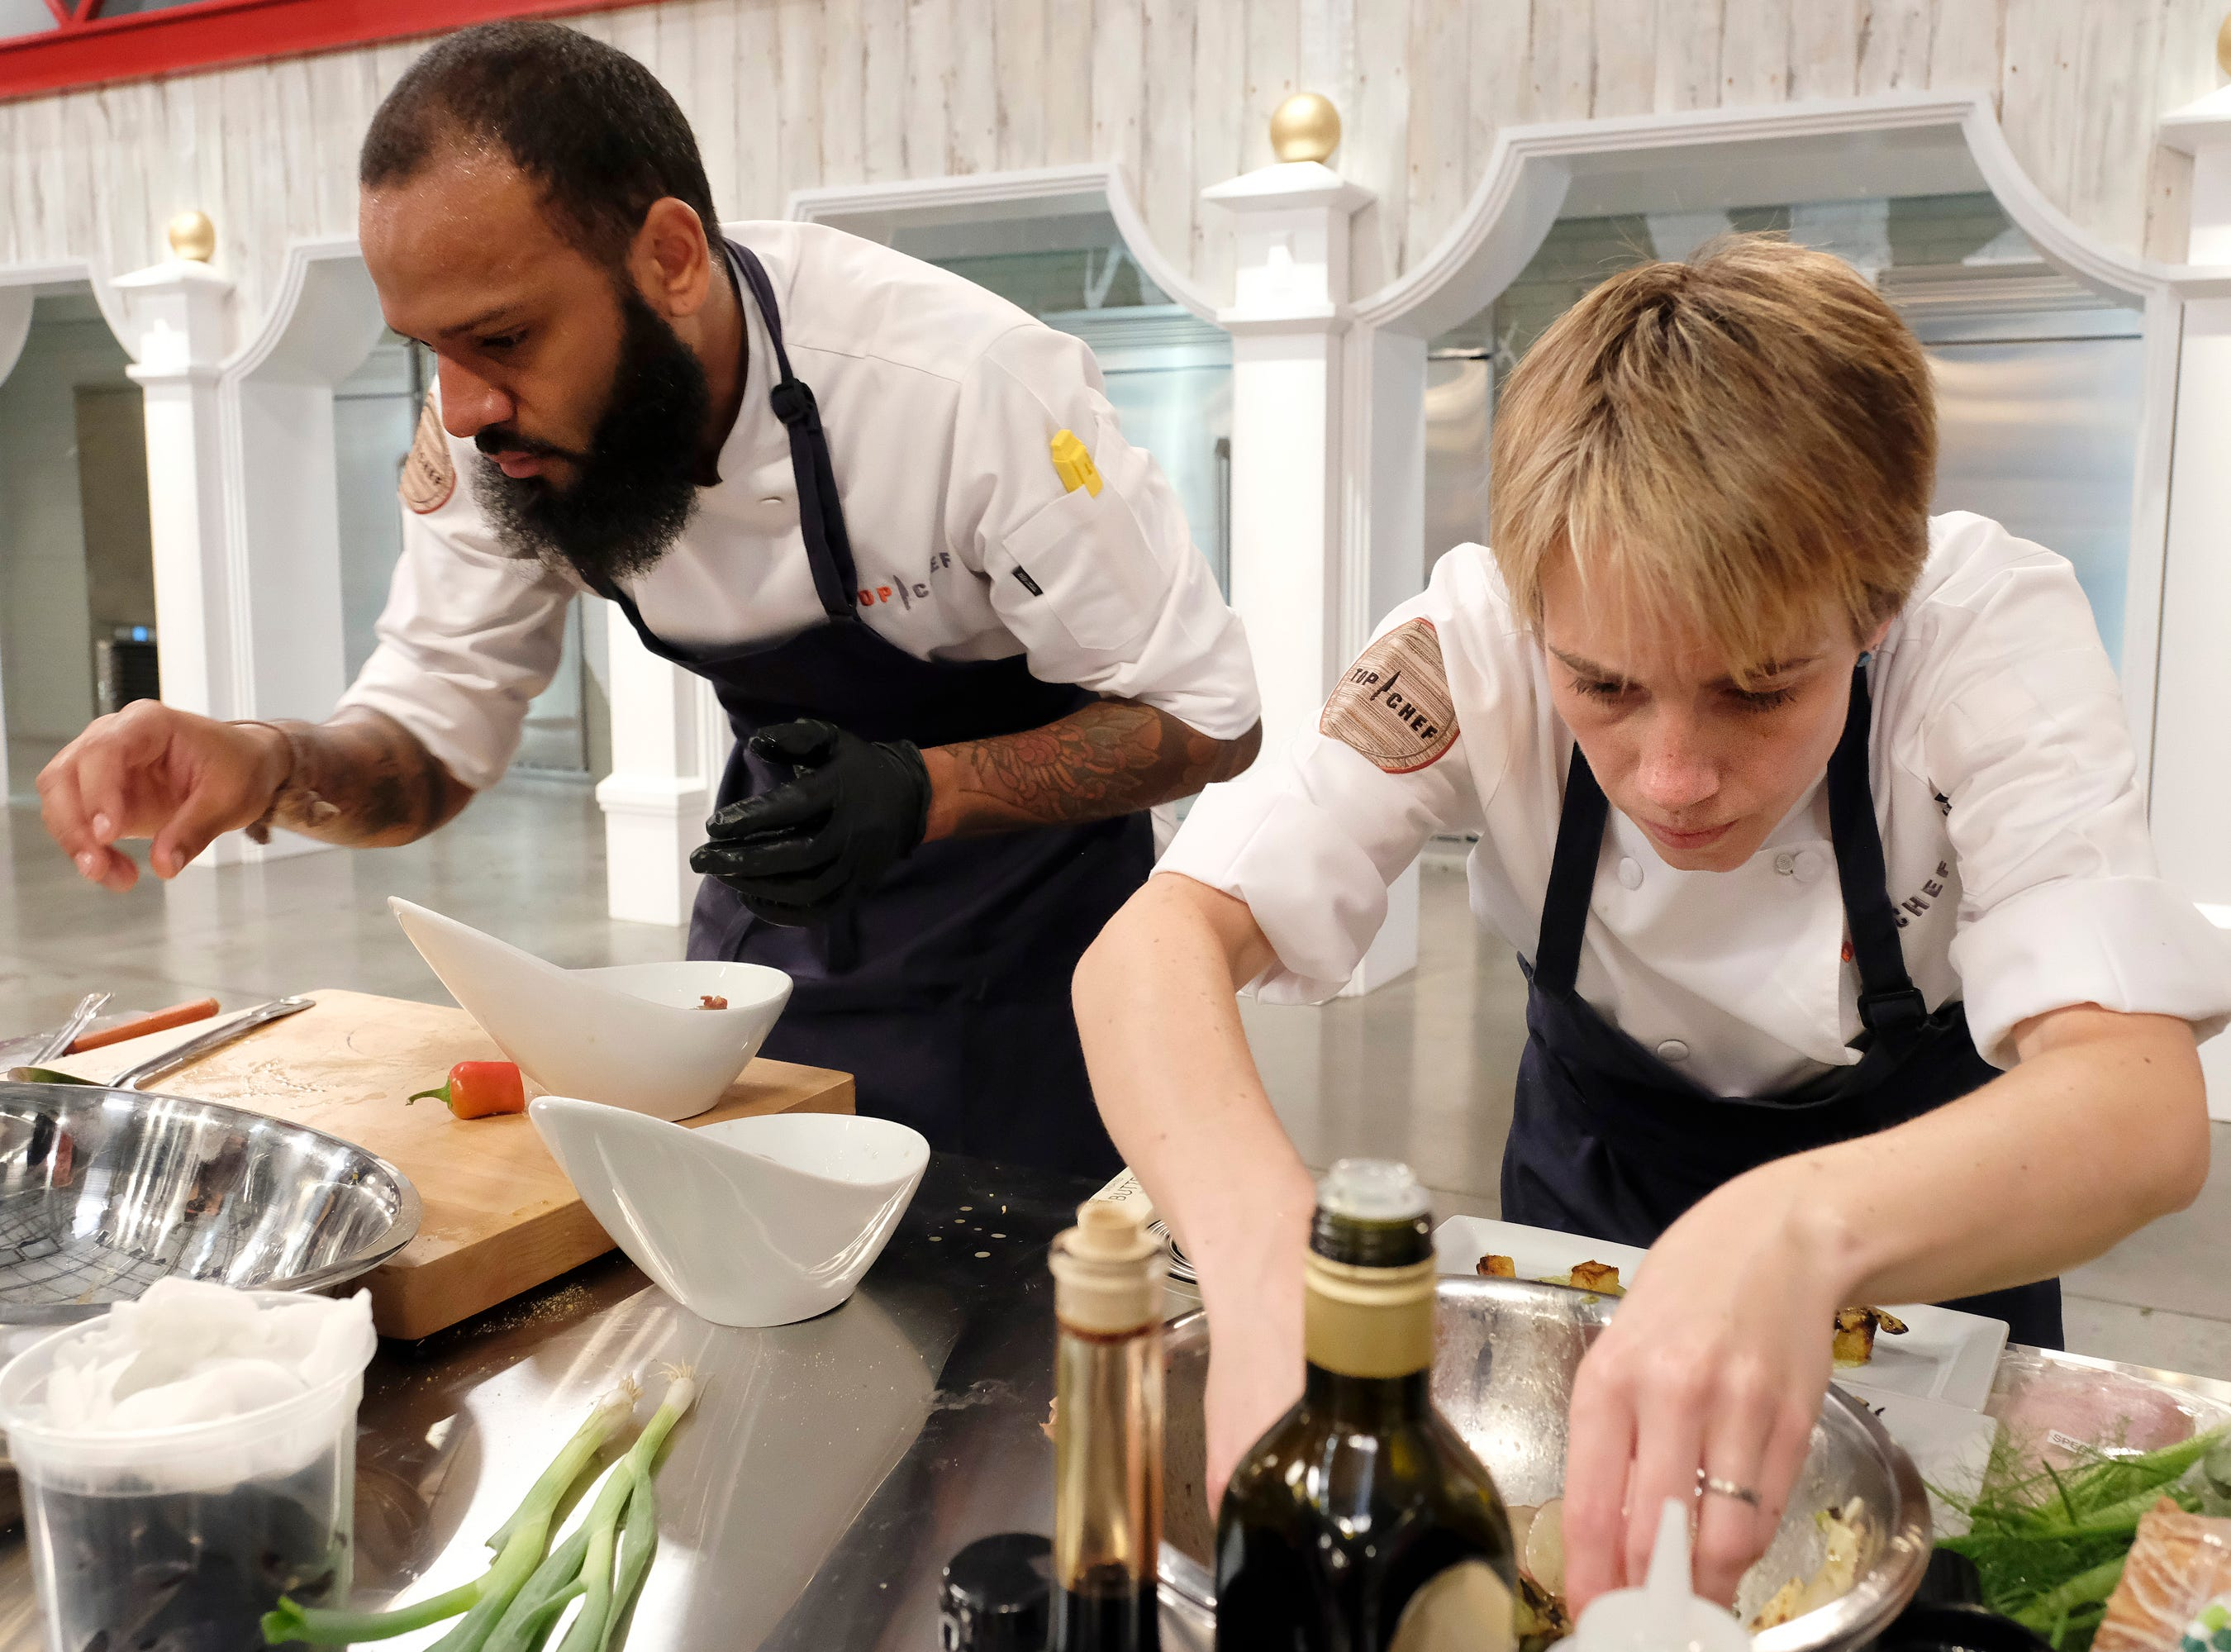 Contestants Justin Sutherland and Adrienne Wright in the kitchen during a quickfire challenge on episode 10 of Bravo's 'Top Chef: Kentucky' season.